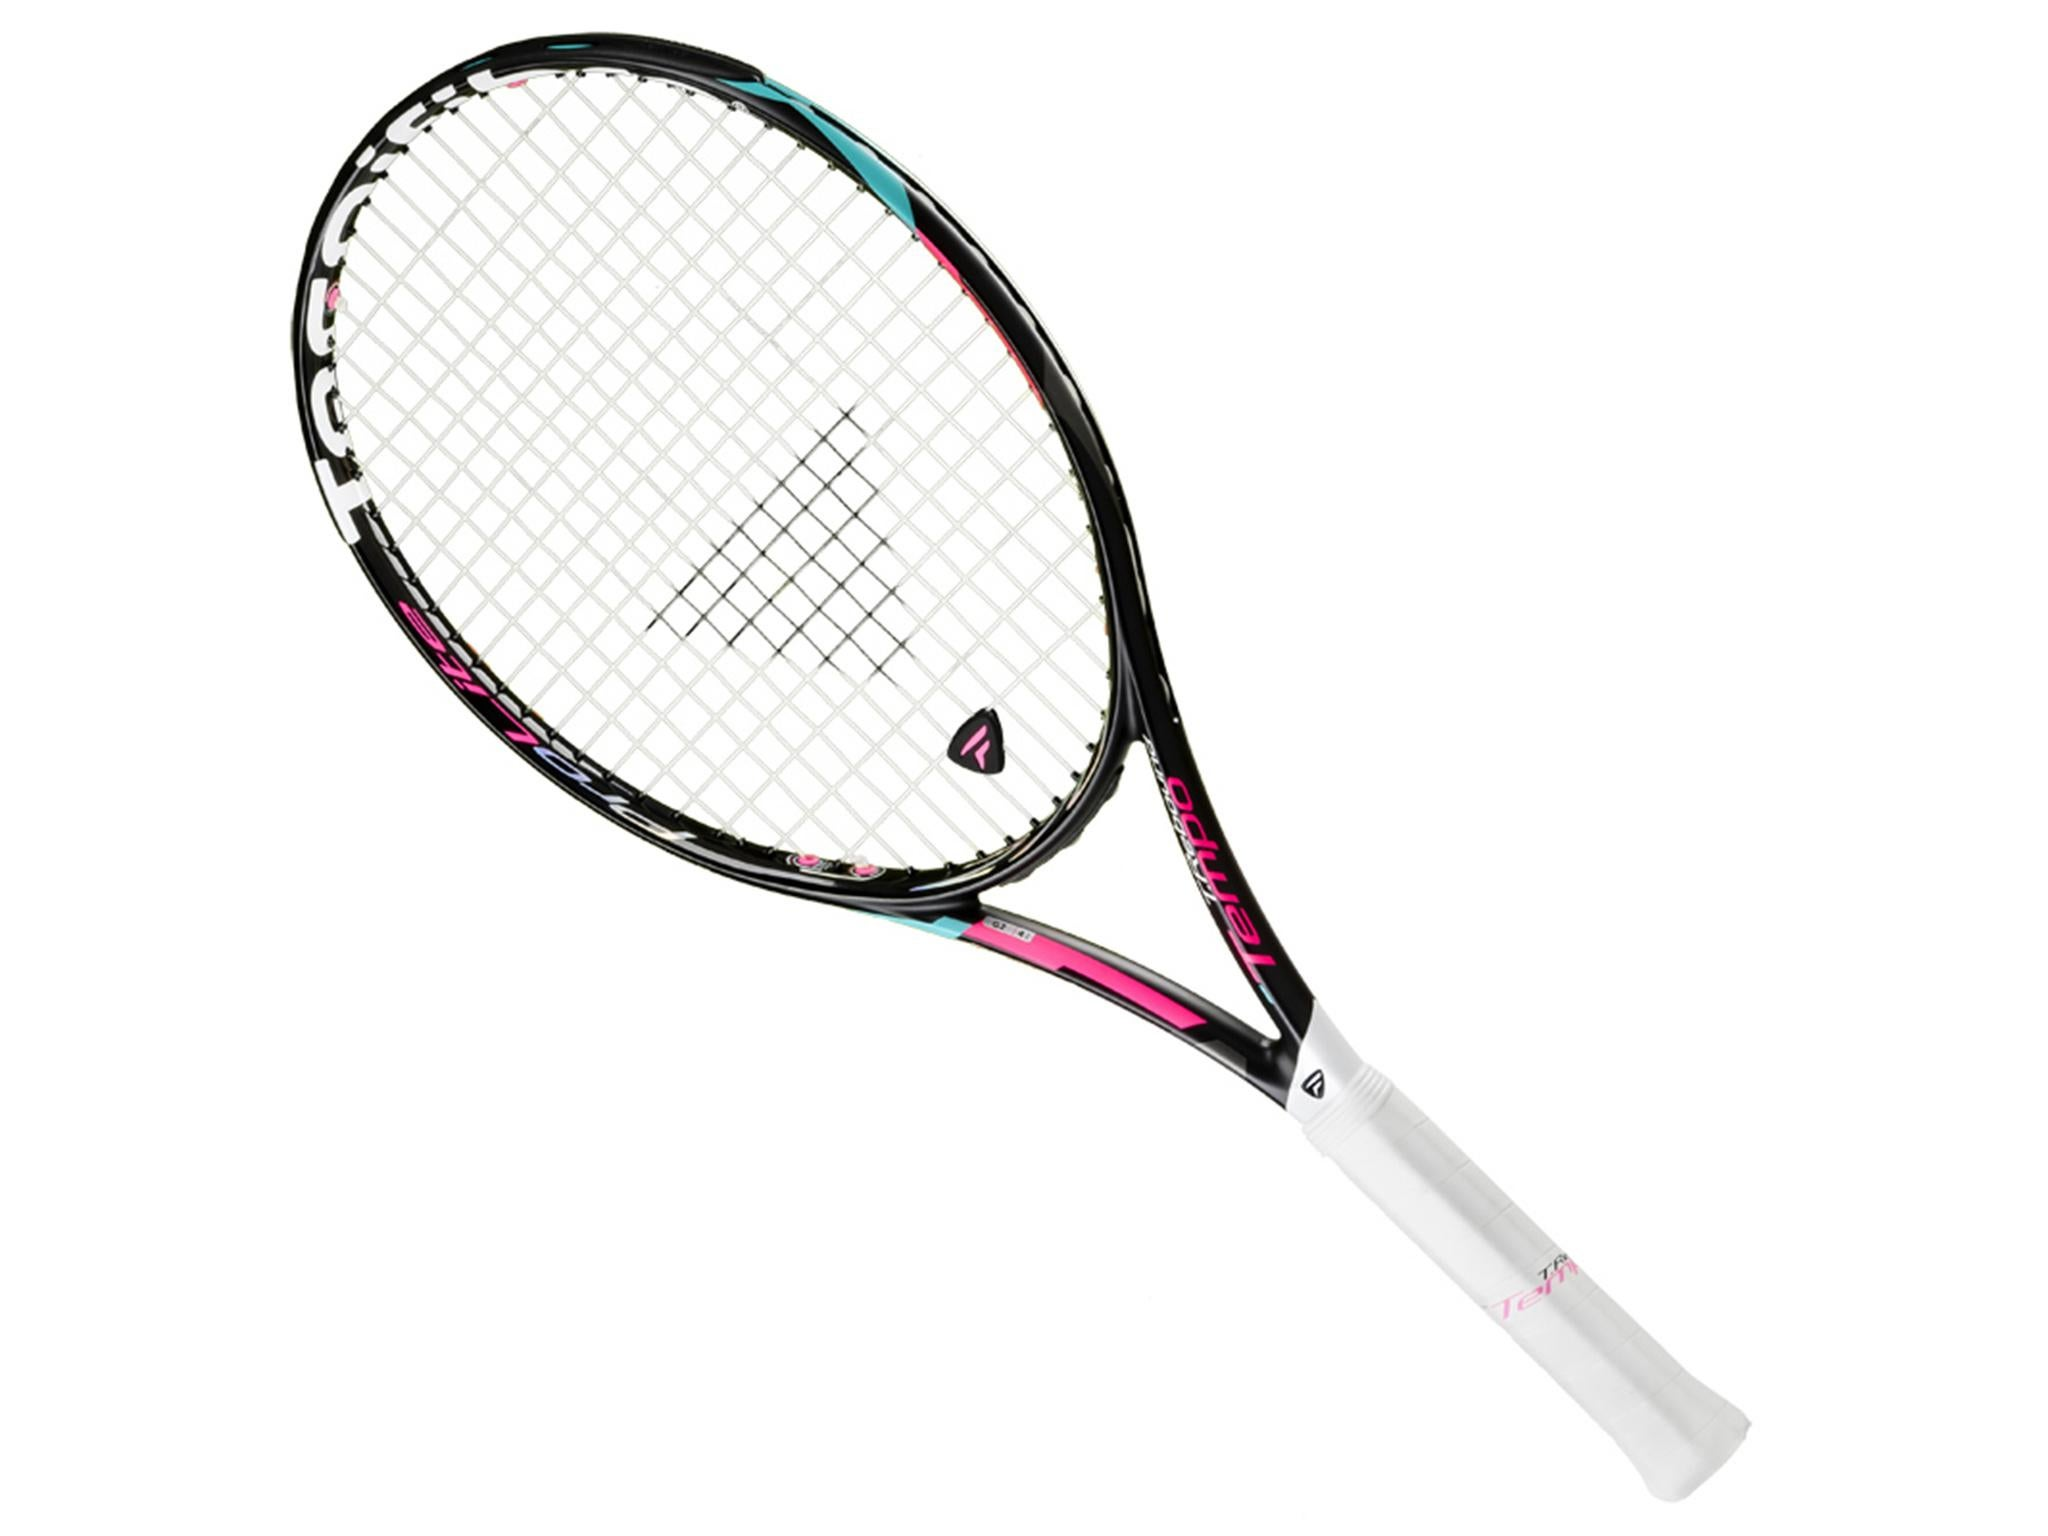 8 Best Tennis Rackets The Independent Racket Diagram How To Grip A Tecnifibre